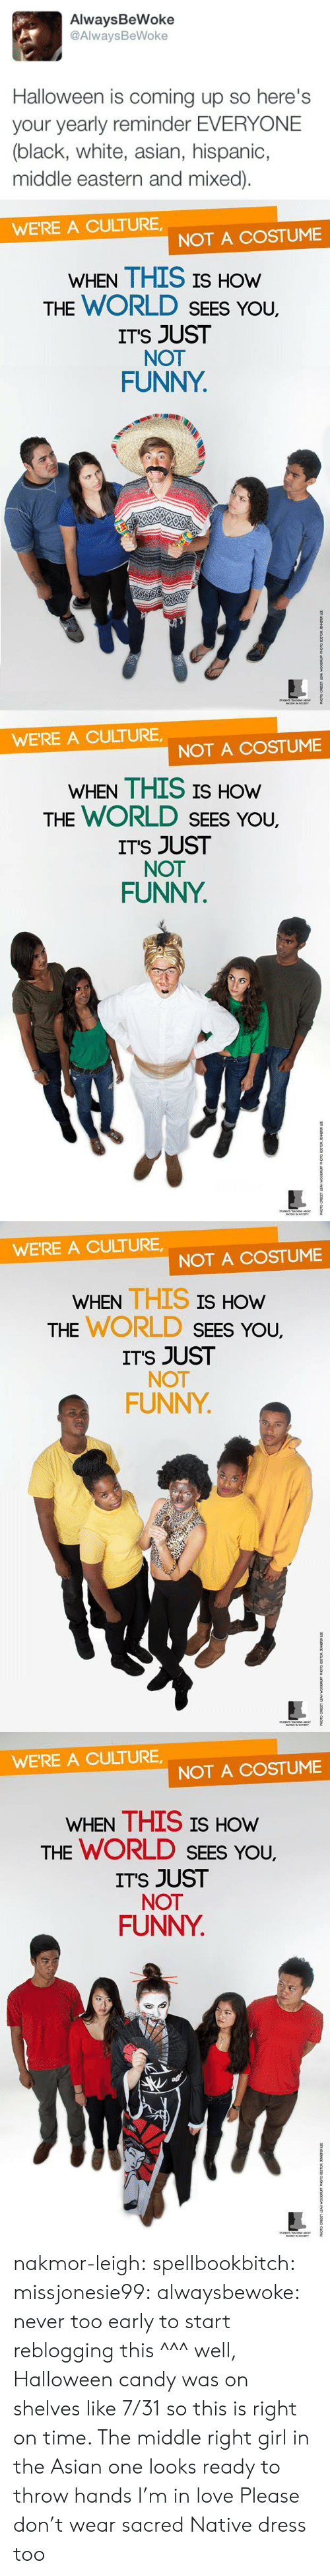 not funny: AlwaysBeWoke  @AlwaysBeWoke  Halloween is coming up so here's  your yearly reminder EVERYONE  (black, white, asian, hispanic,  middle eastern and mixed)   WE'RE A CULTURE  NOT A COSTUME  WHEN THIS IS HOW  THE WORLD SEES YoU.  ITS JUST  NOT  FUNNY   WE'RE A CULTURE  NOT A COSTUME  WHEN THIS IS HOW  THE WORLD SEES YoU.  ITS JUST  NOT  FUNNY   WE'RE A CULTURE,  NOT A COSTUME  WHEN THIS IS  HOW  THE WORLD SEEs You,  ITS JUST  NOT  FUNNY   WE'RE A CULTURE  NOT A COSTUME  WHEN THIS IS HOw  THE WORLD SEES You,  ITS JUST  NOT  FUNNY nakmor-leigh: spellbookbitch:  missjonesie99:  alwaysbewoke:  never too early to start reblogging this  ^^^ well, Halloween candy was on shelves like 7/31 so this is right on time.    The middle right girl in the Asian one looks ready to throw hands I'm in love   Please don't wear sacred Native dress too